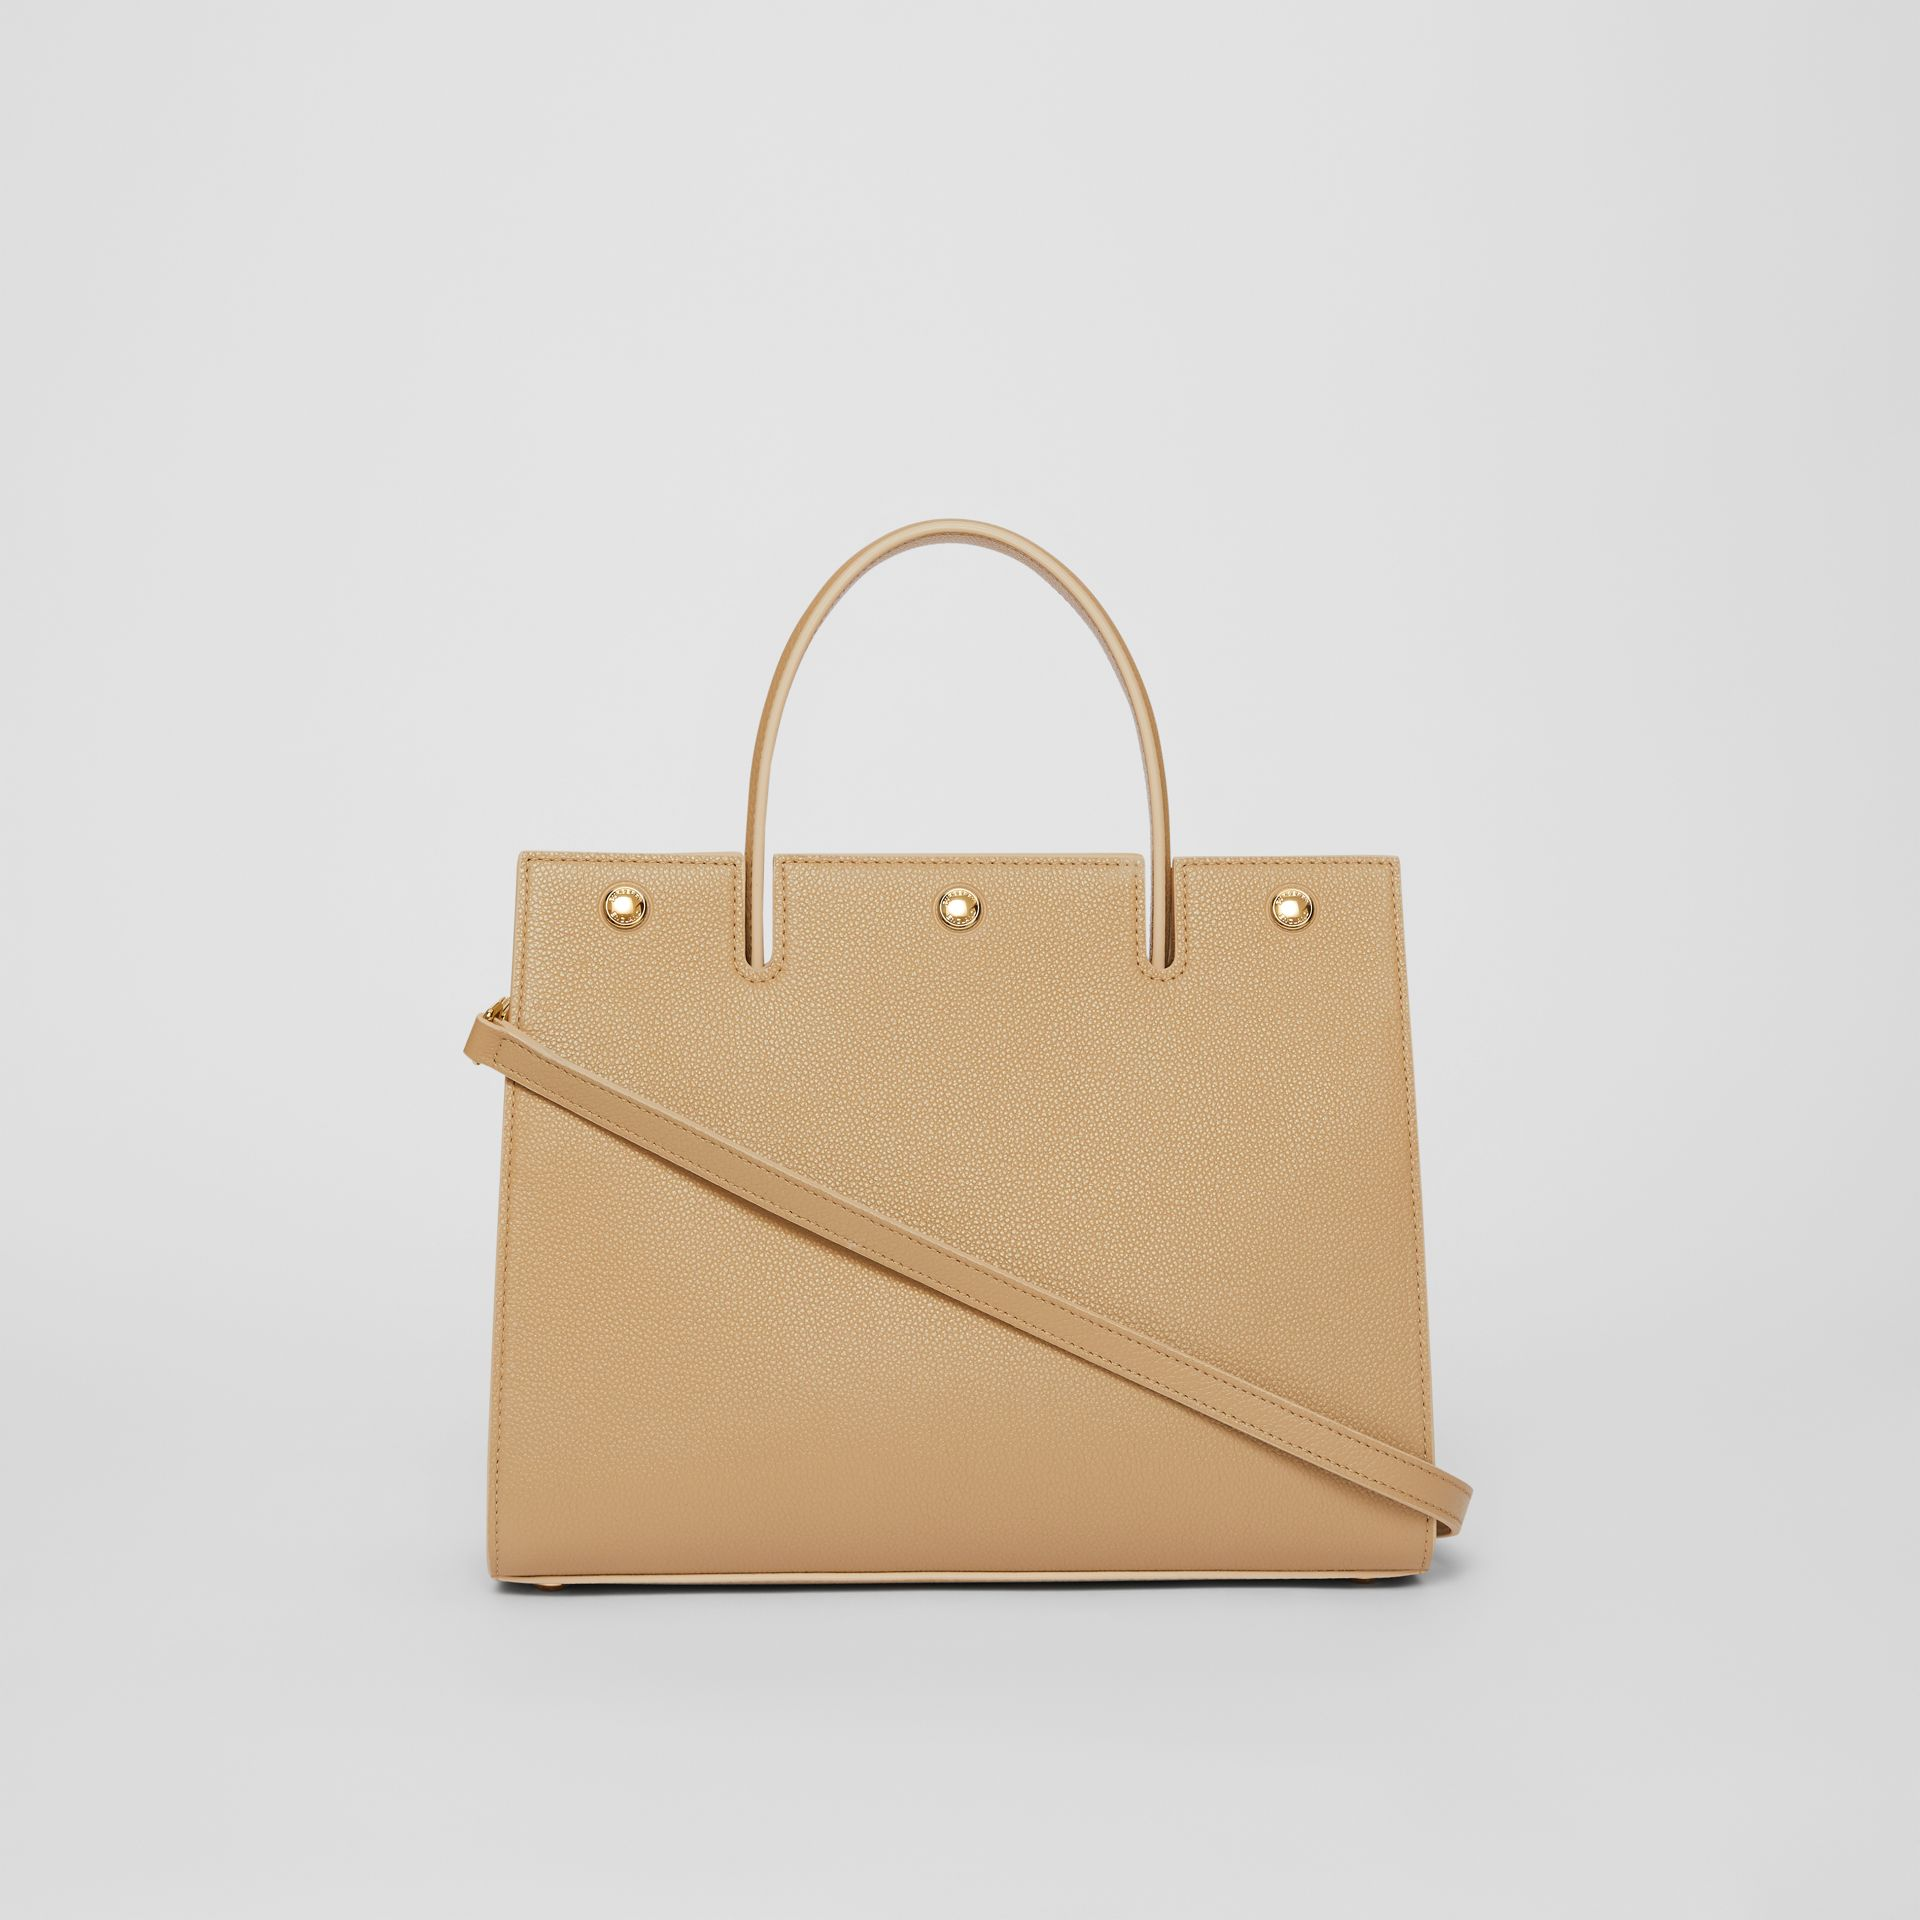 Small Leather Title Bag in Honey - Women | Burberry - gallery image 5